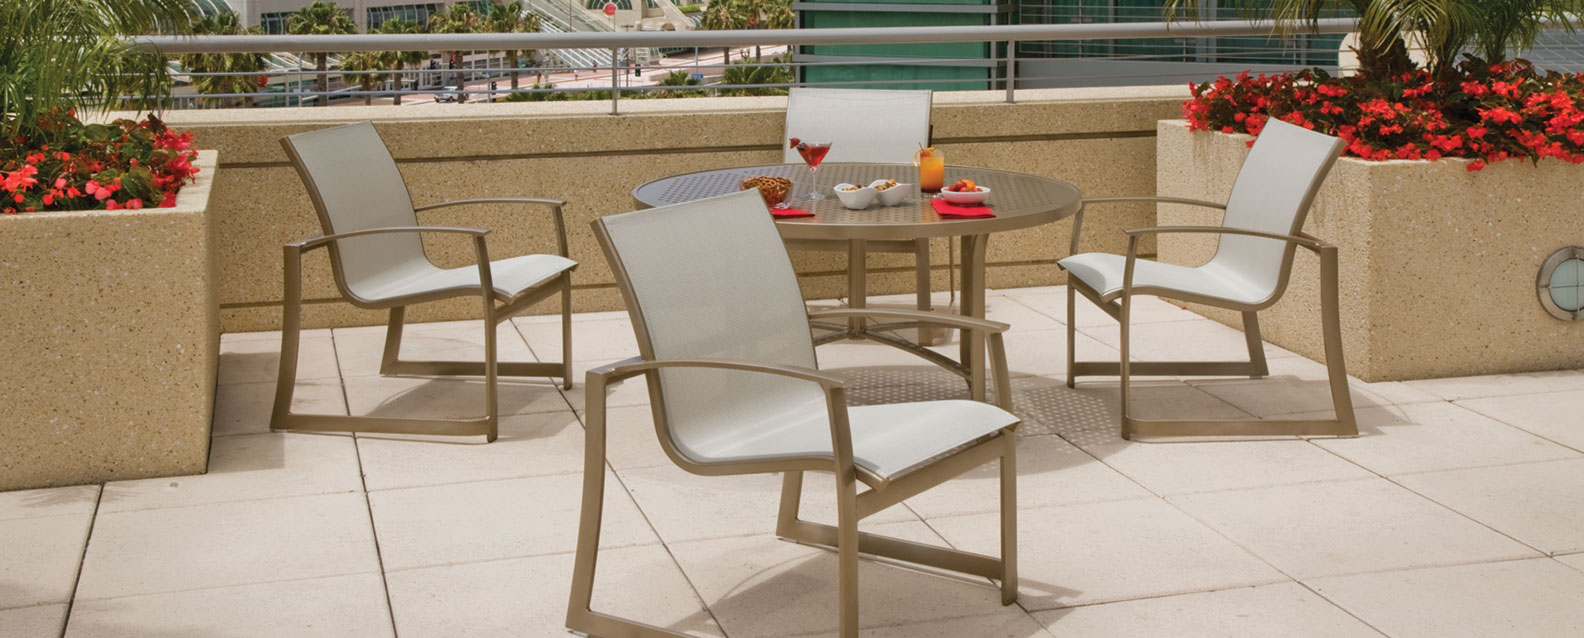 patio cover store furniture by collection tropitone pasadena brand fishbecks lakeside